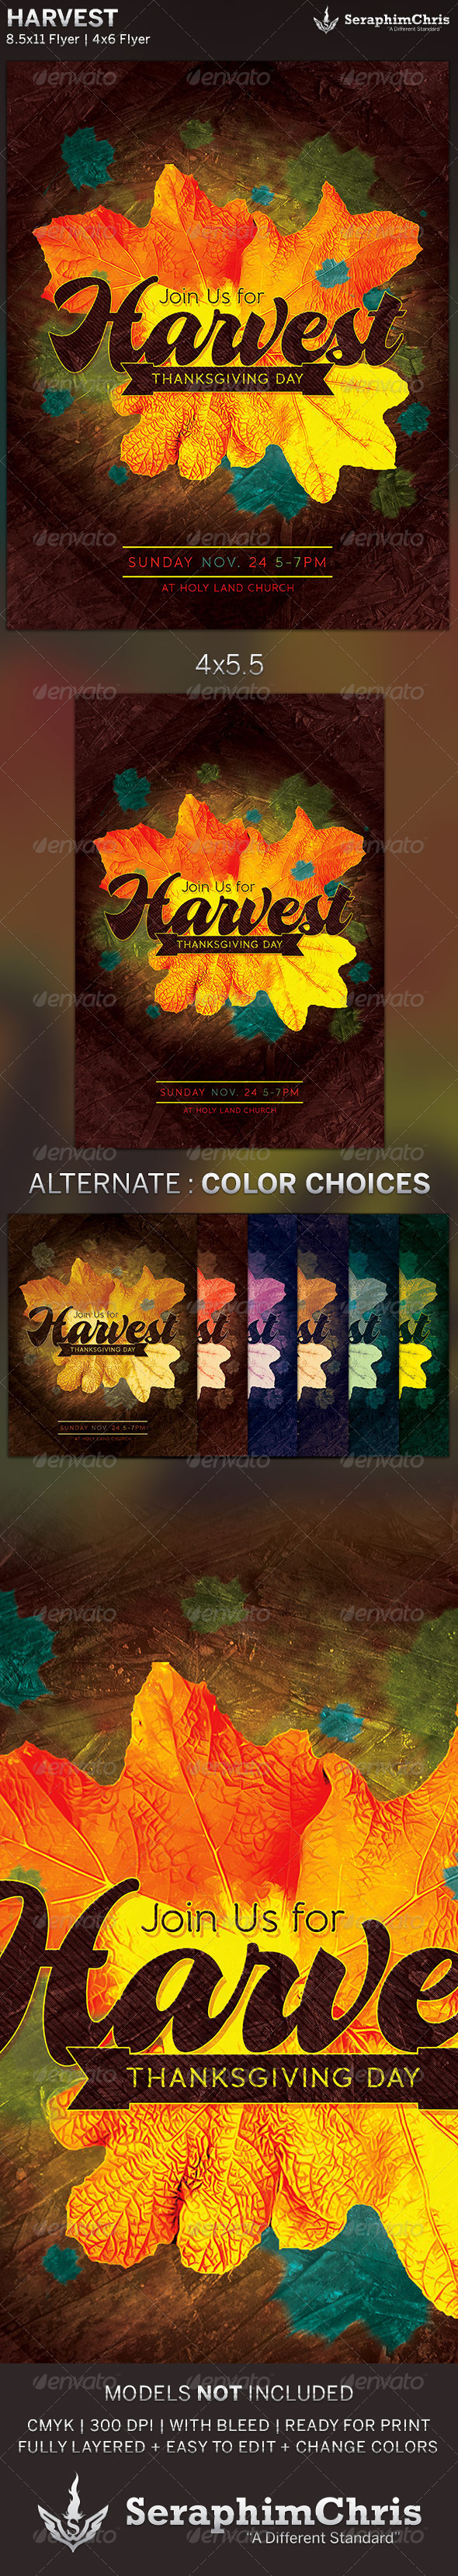 GraphicRiver Harvest Thanksgiving Church Flyer Template 5625407